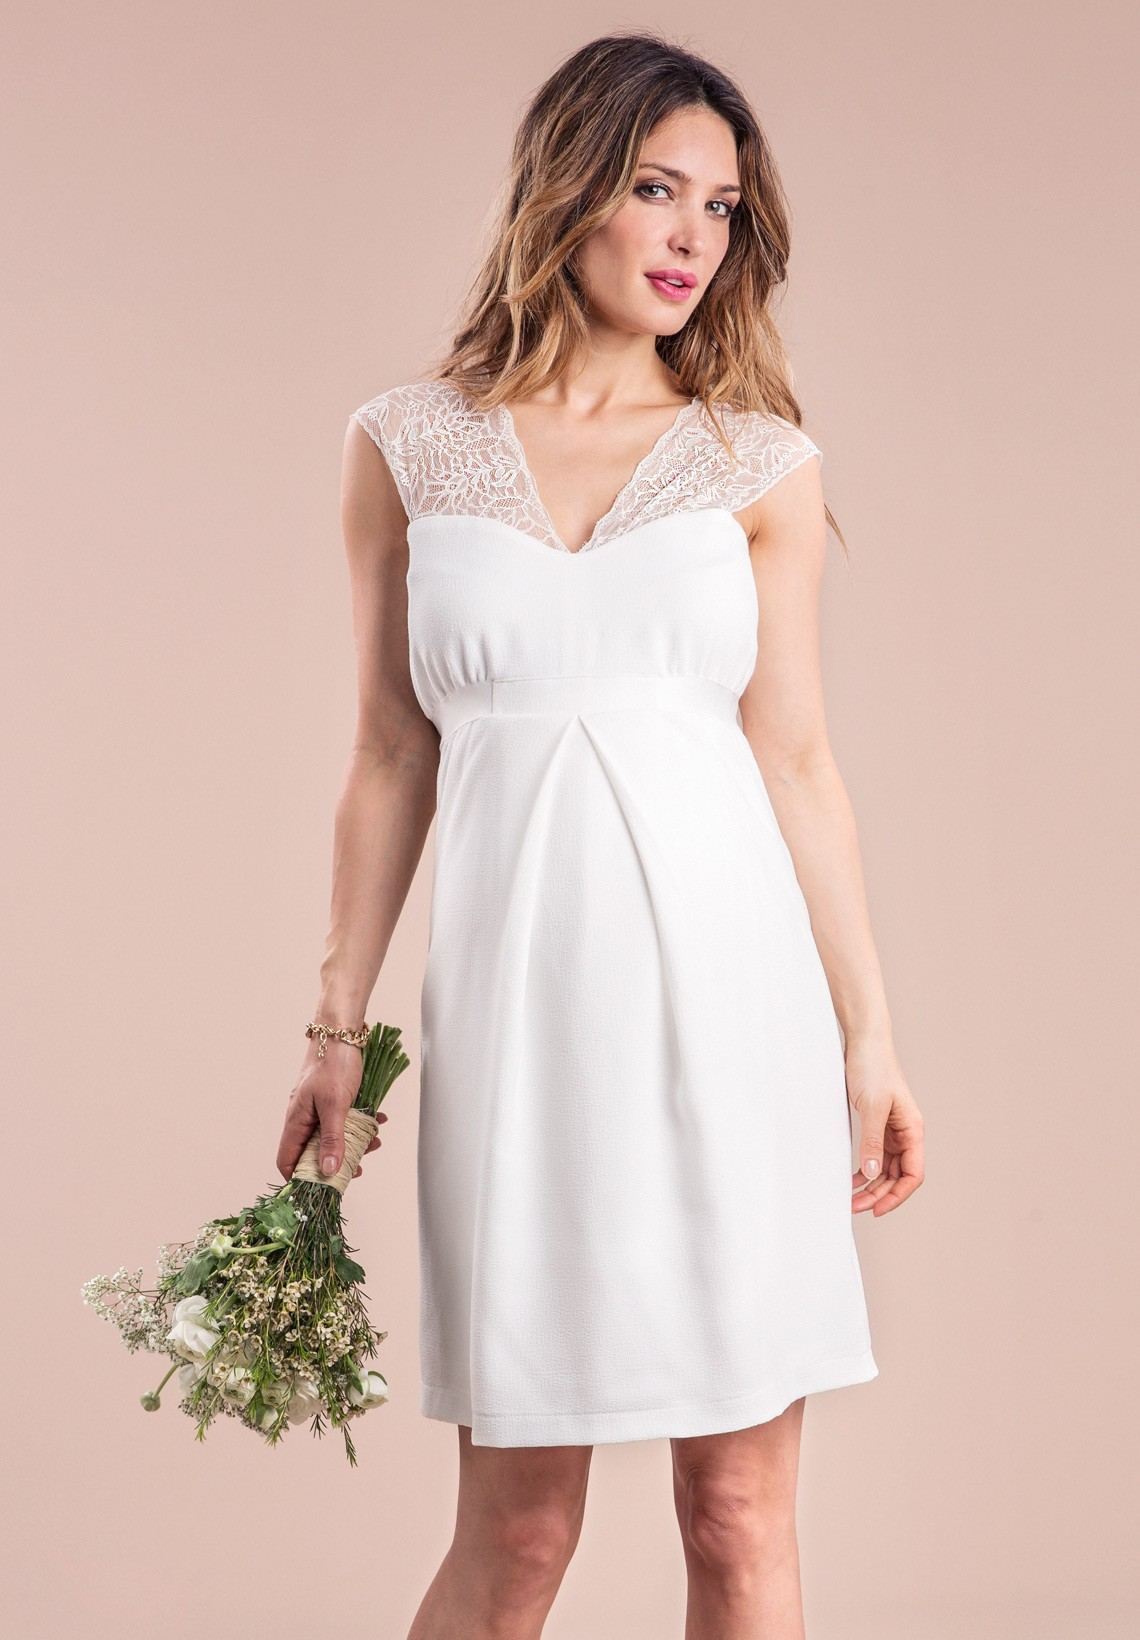 Maternity wedding dresses - trendy selections at affordable prices ...